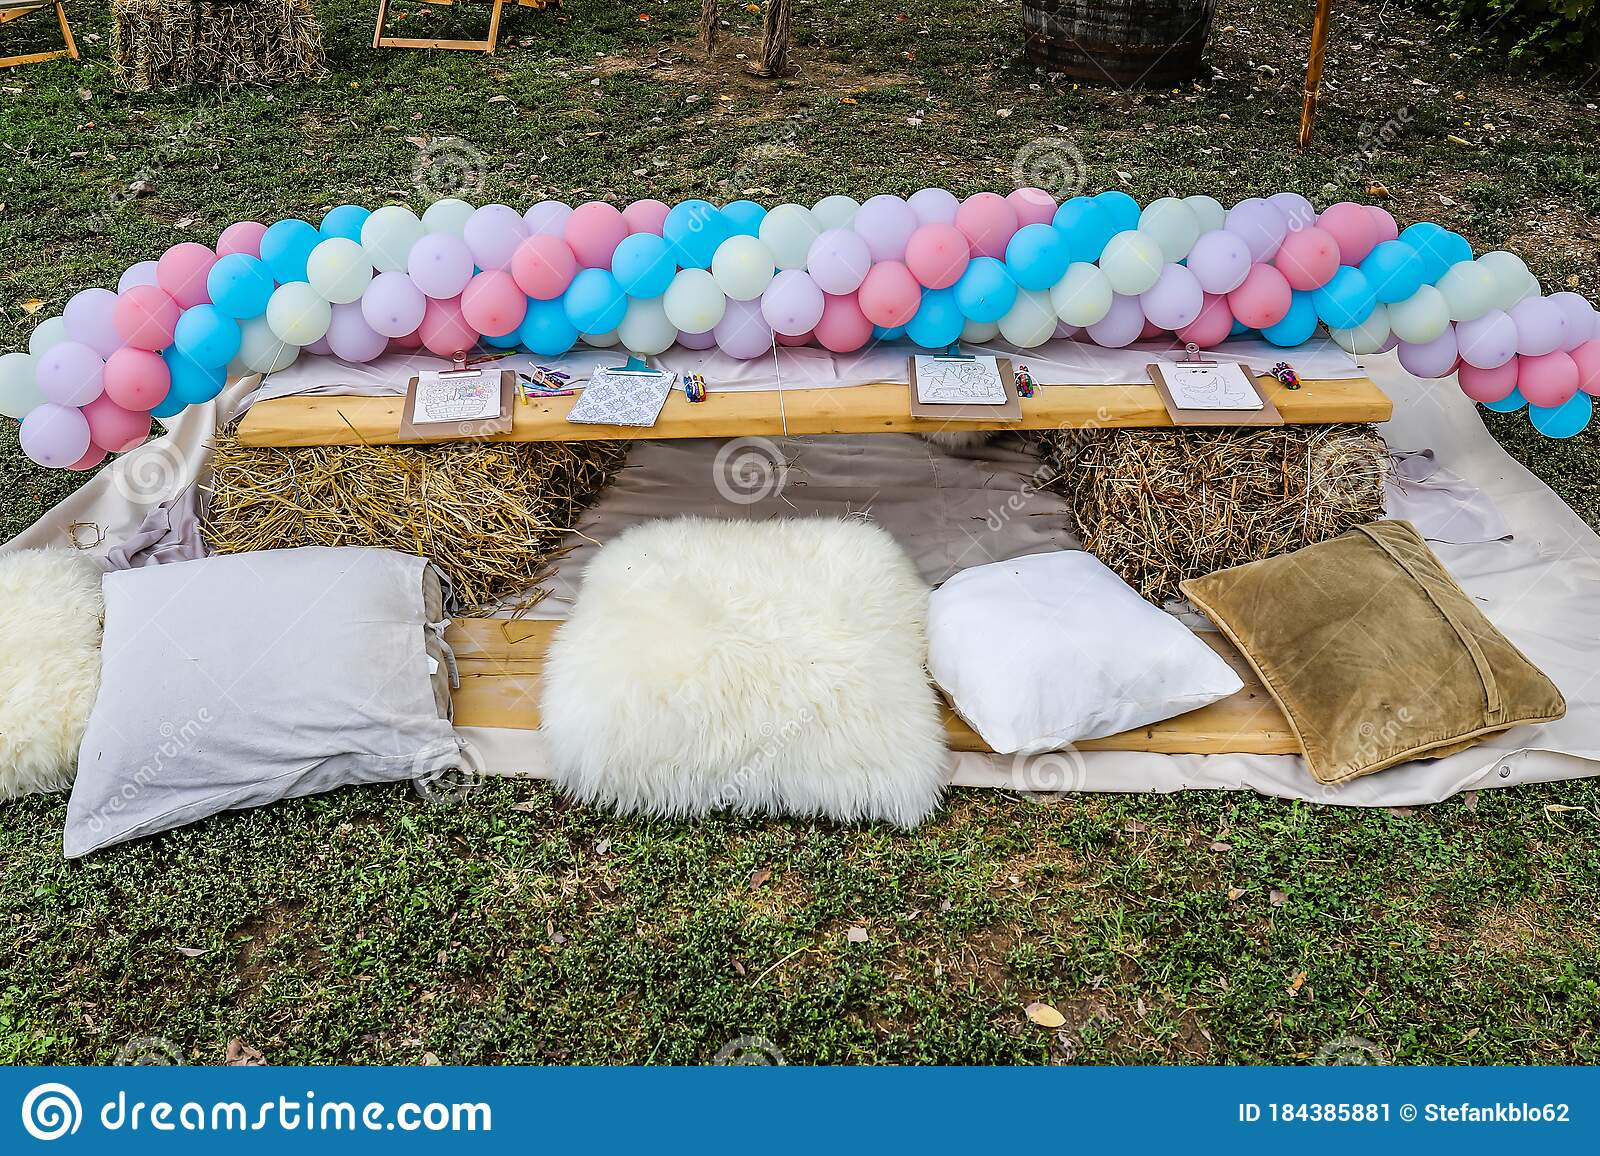 Outdoor Birthday Party Decoration Stock Image Image Of Crayons Grass 184385881